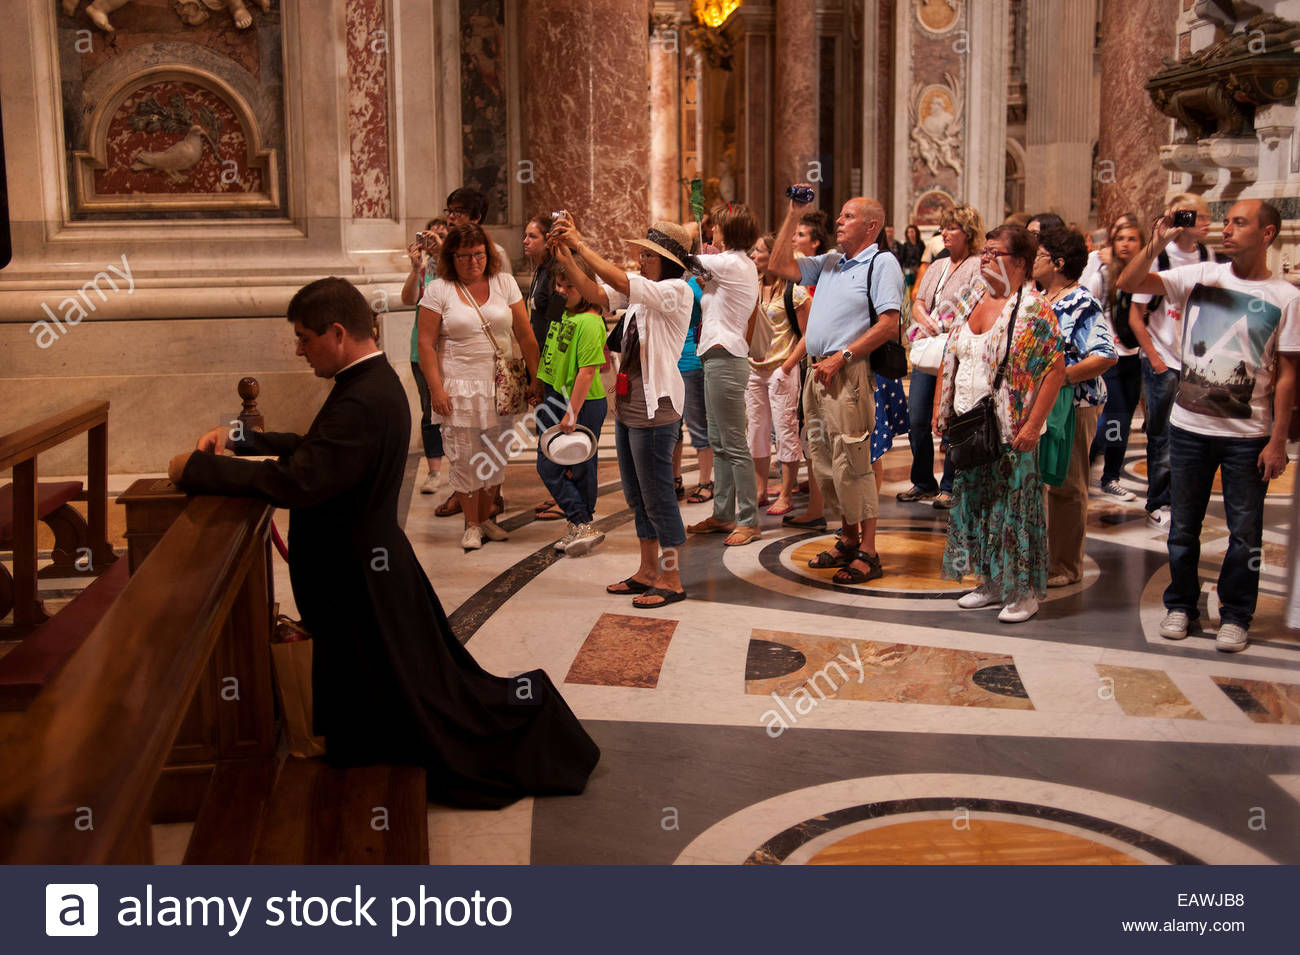 A priest prays while tourists take pictures in Saint Peter's Basilica. - Stock Image